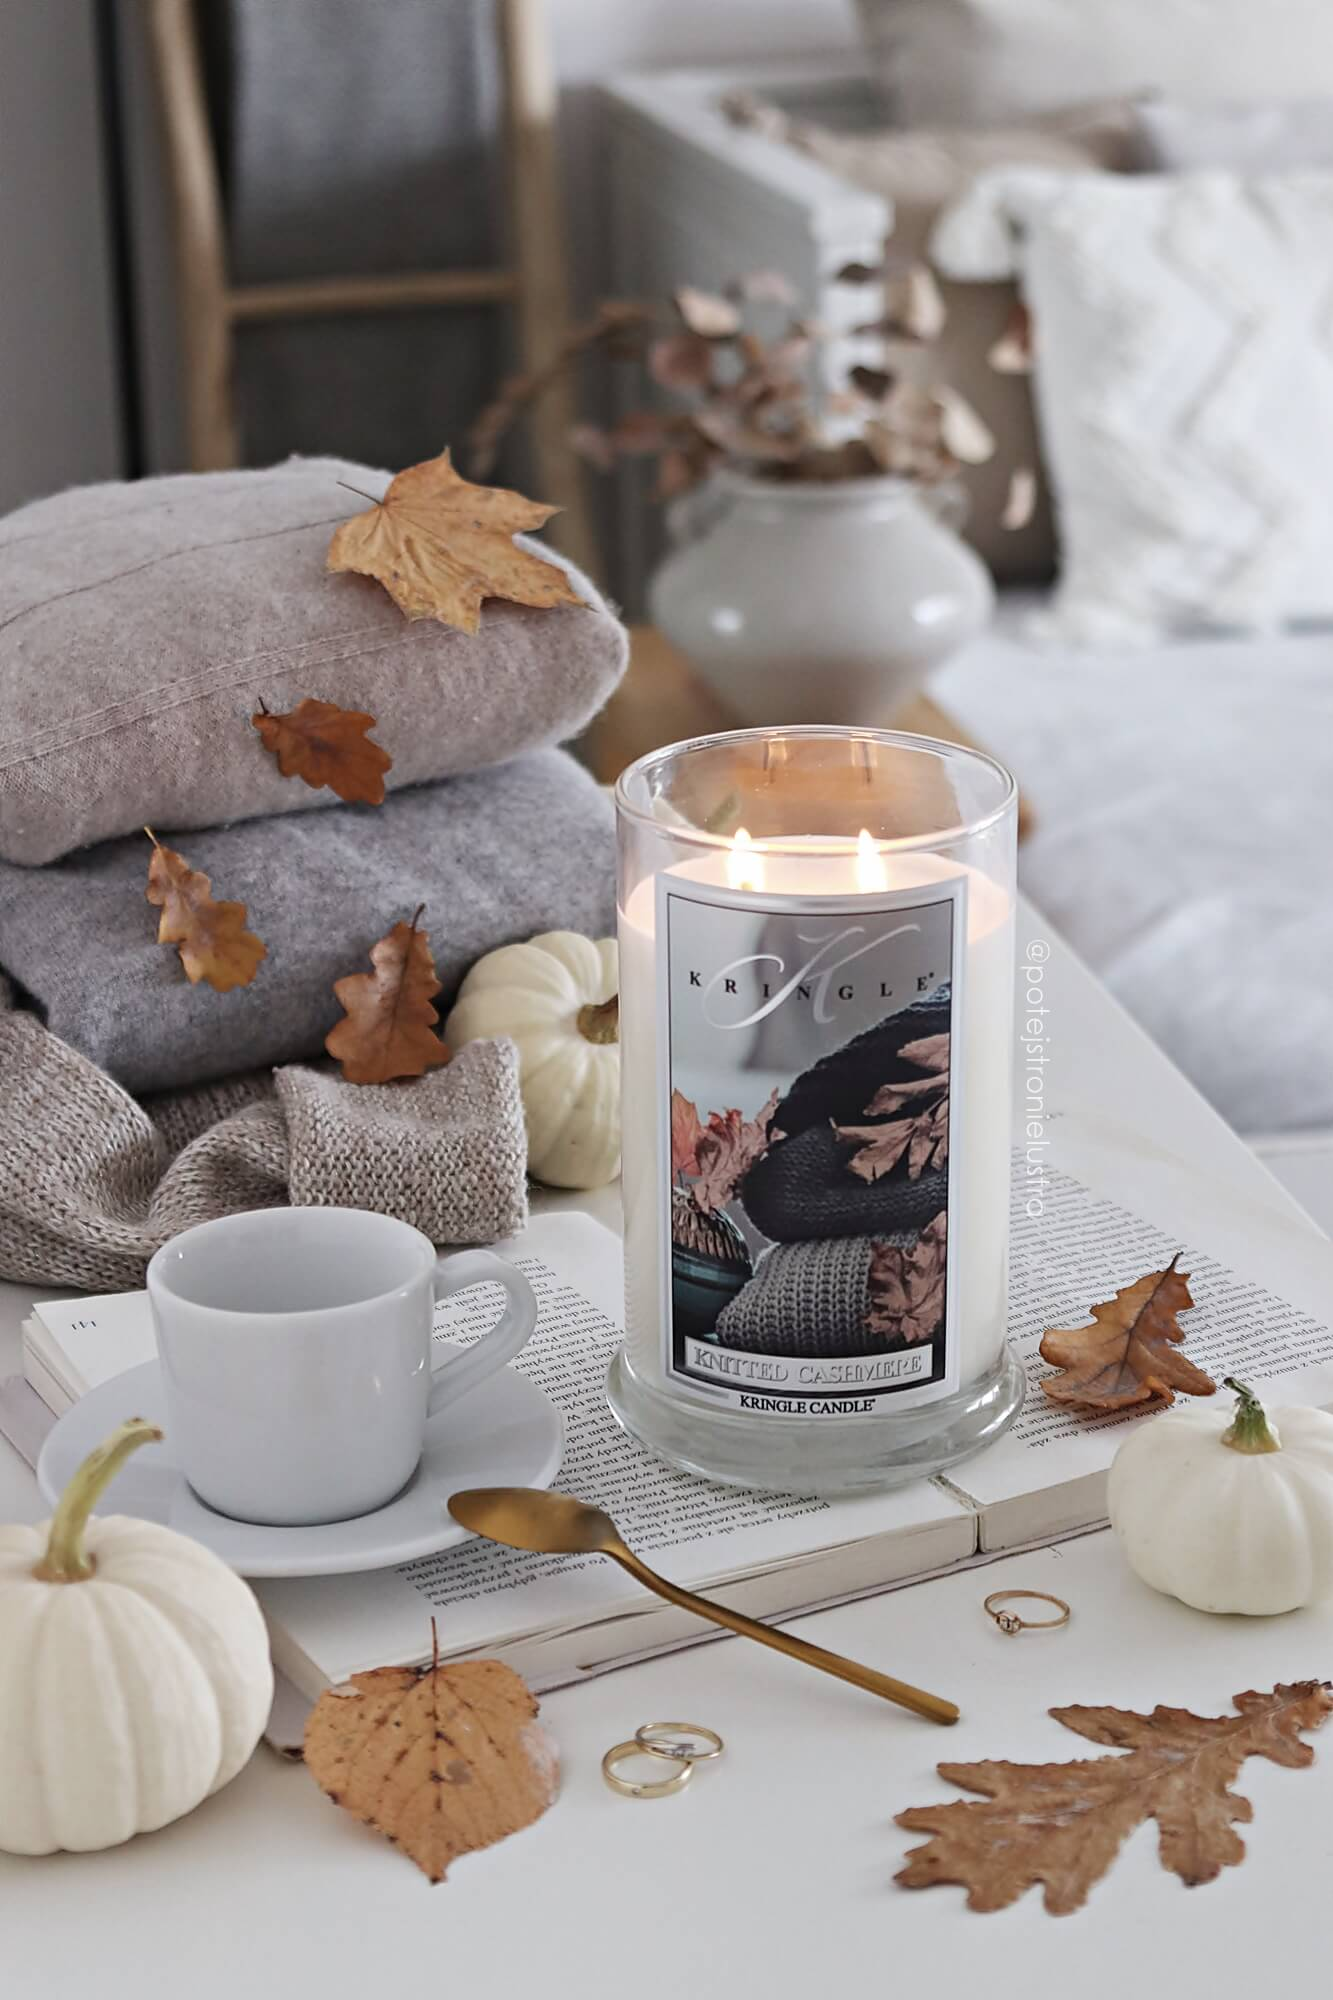 kringle candle knitted cashmere